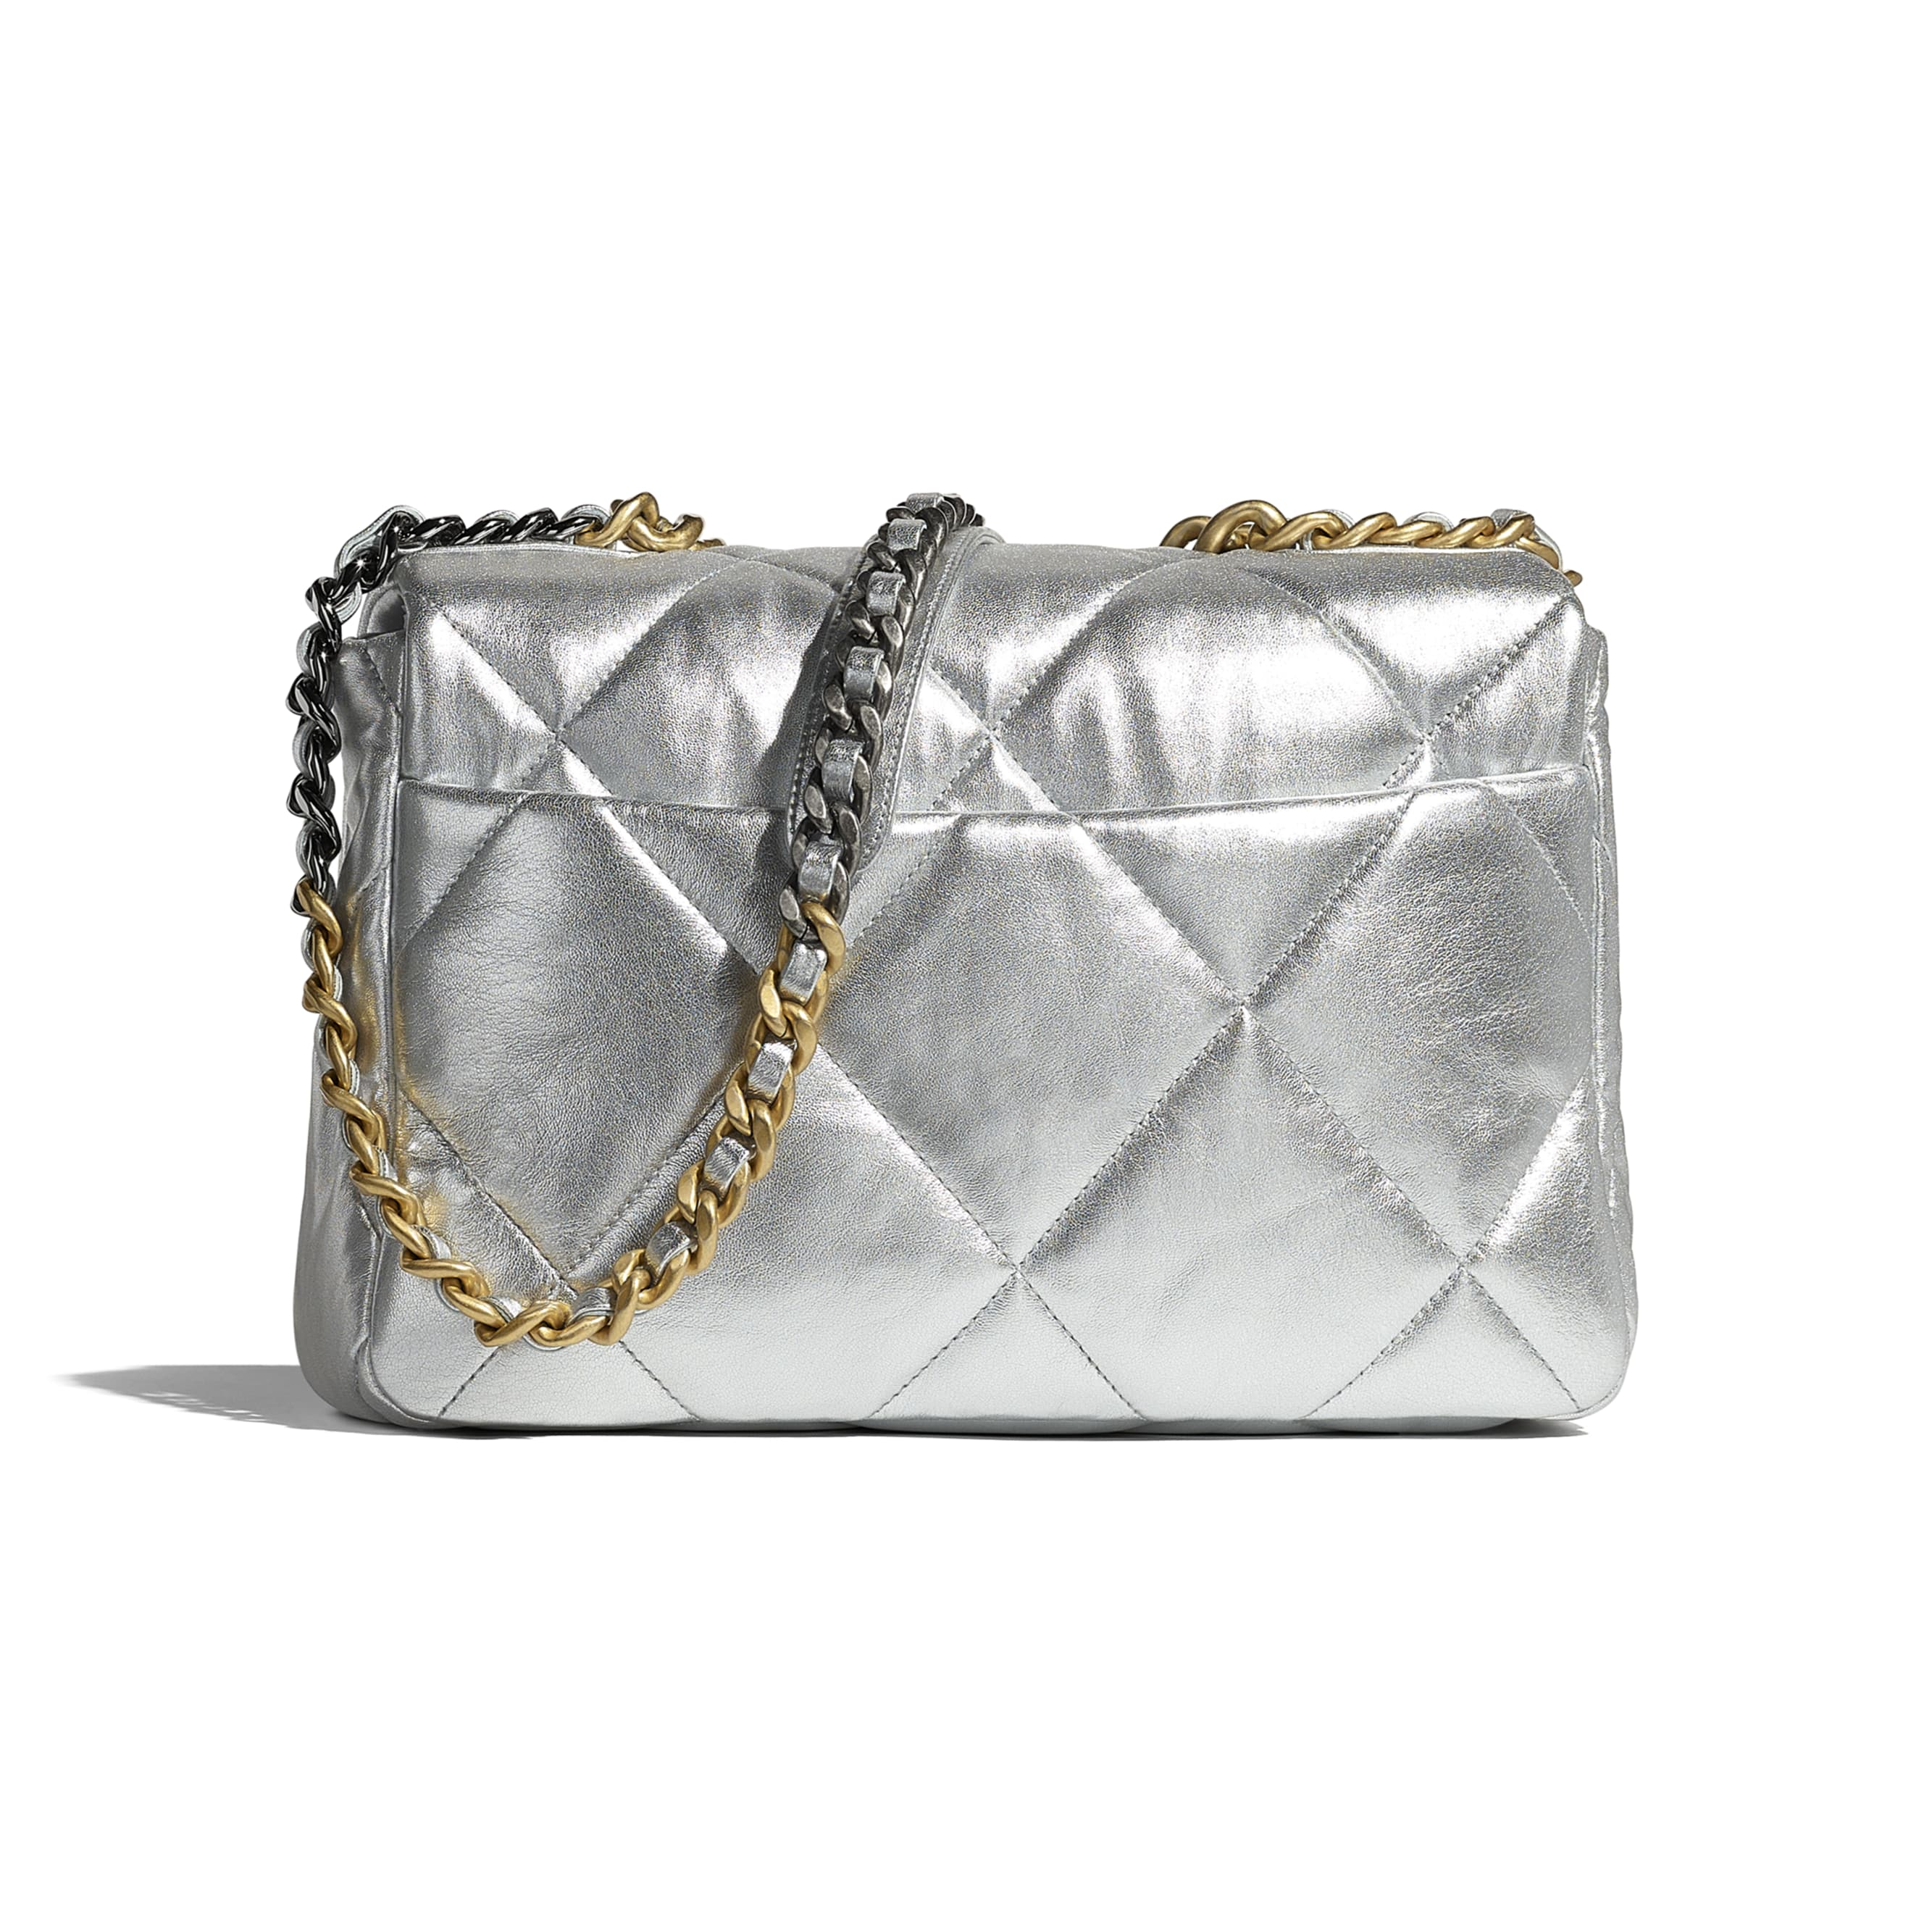 CHANEL 19 Large Flap Bag - Silver - Metallic Lambskin, Gold-Tone, Silver-Tone & Ruthenium-Finish Metal - CHANEL - Alternative view - see standard sized version